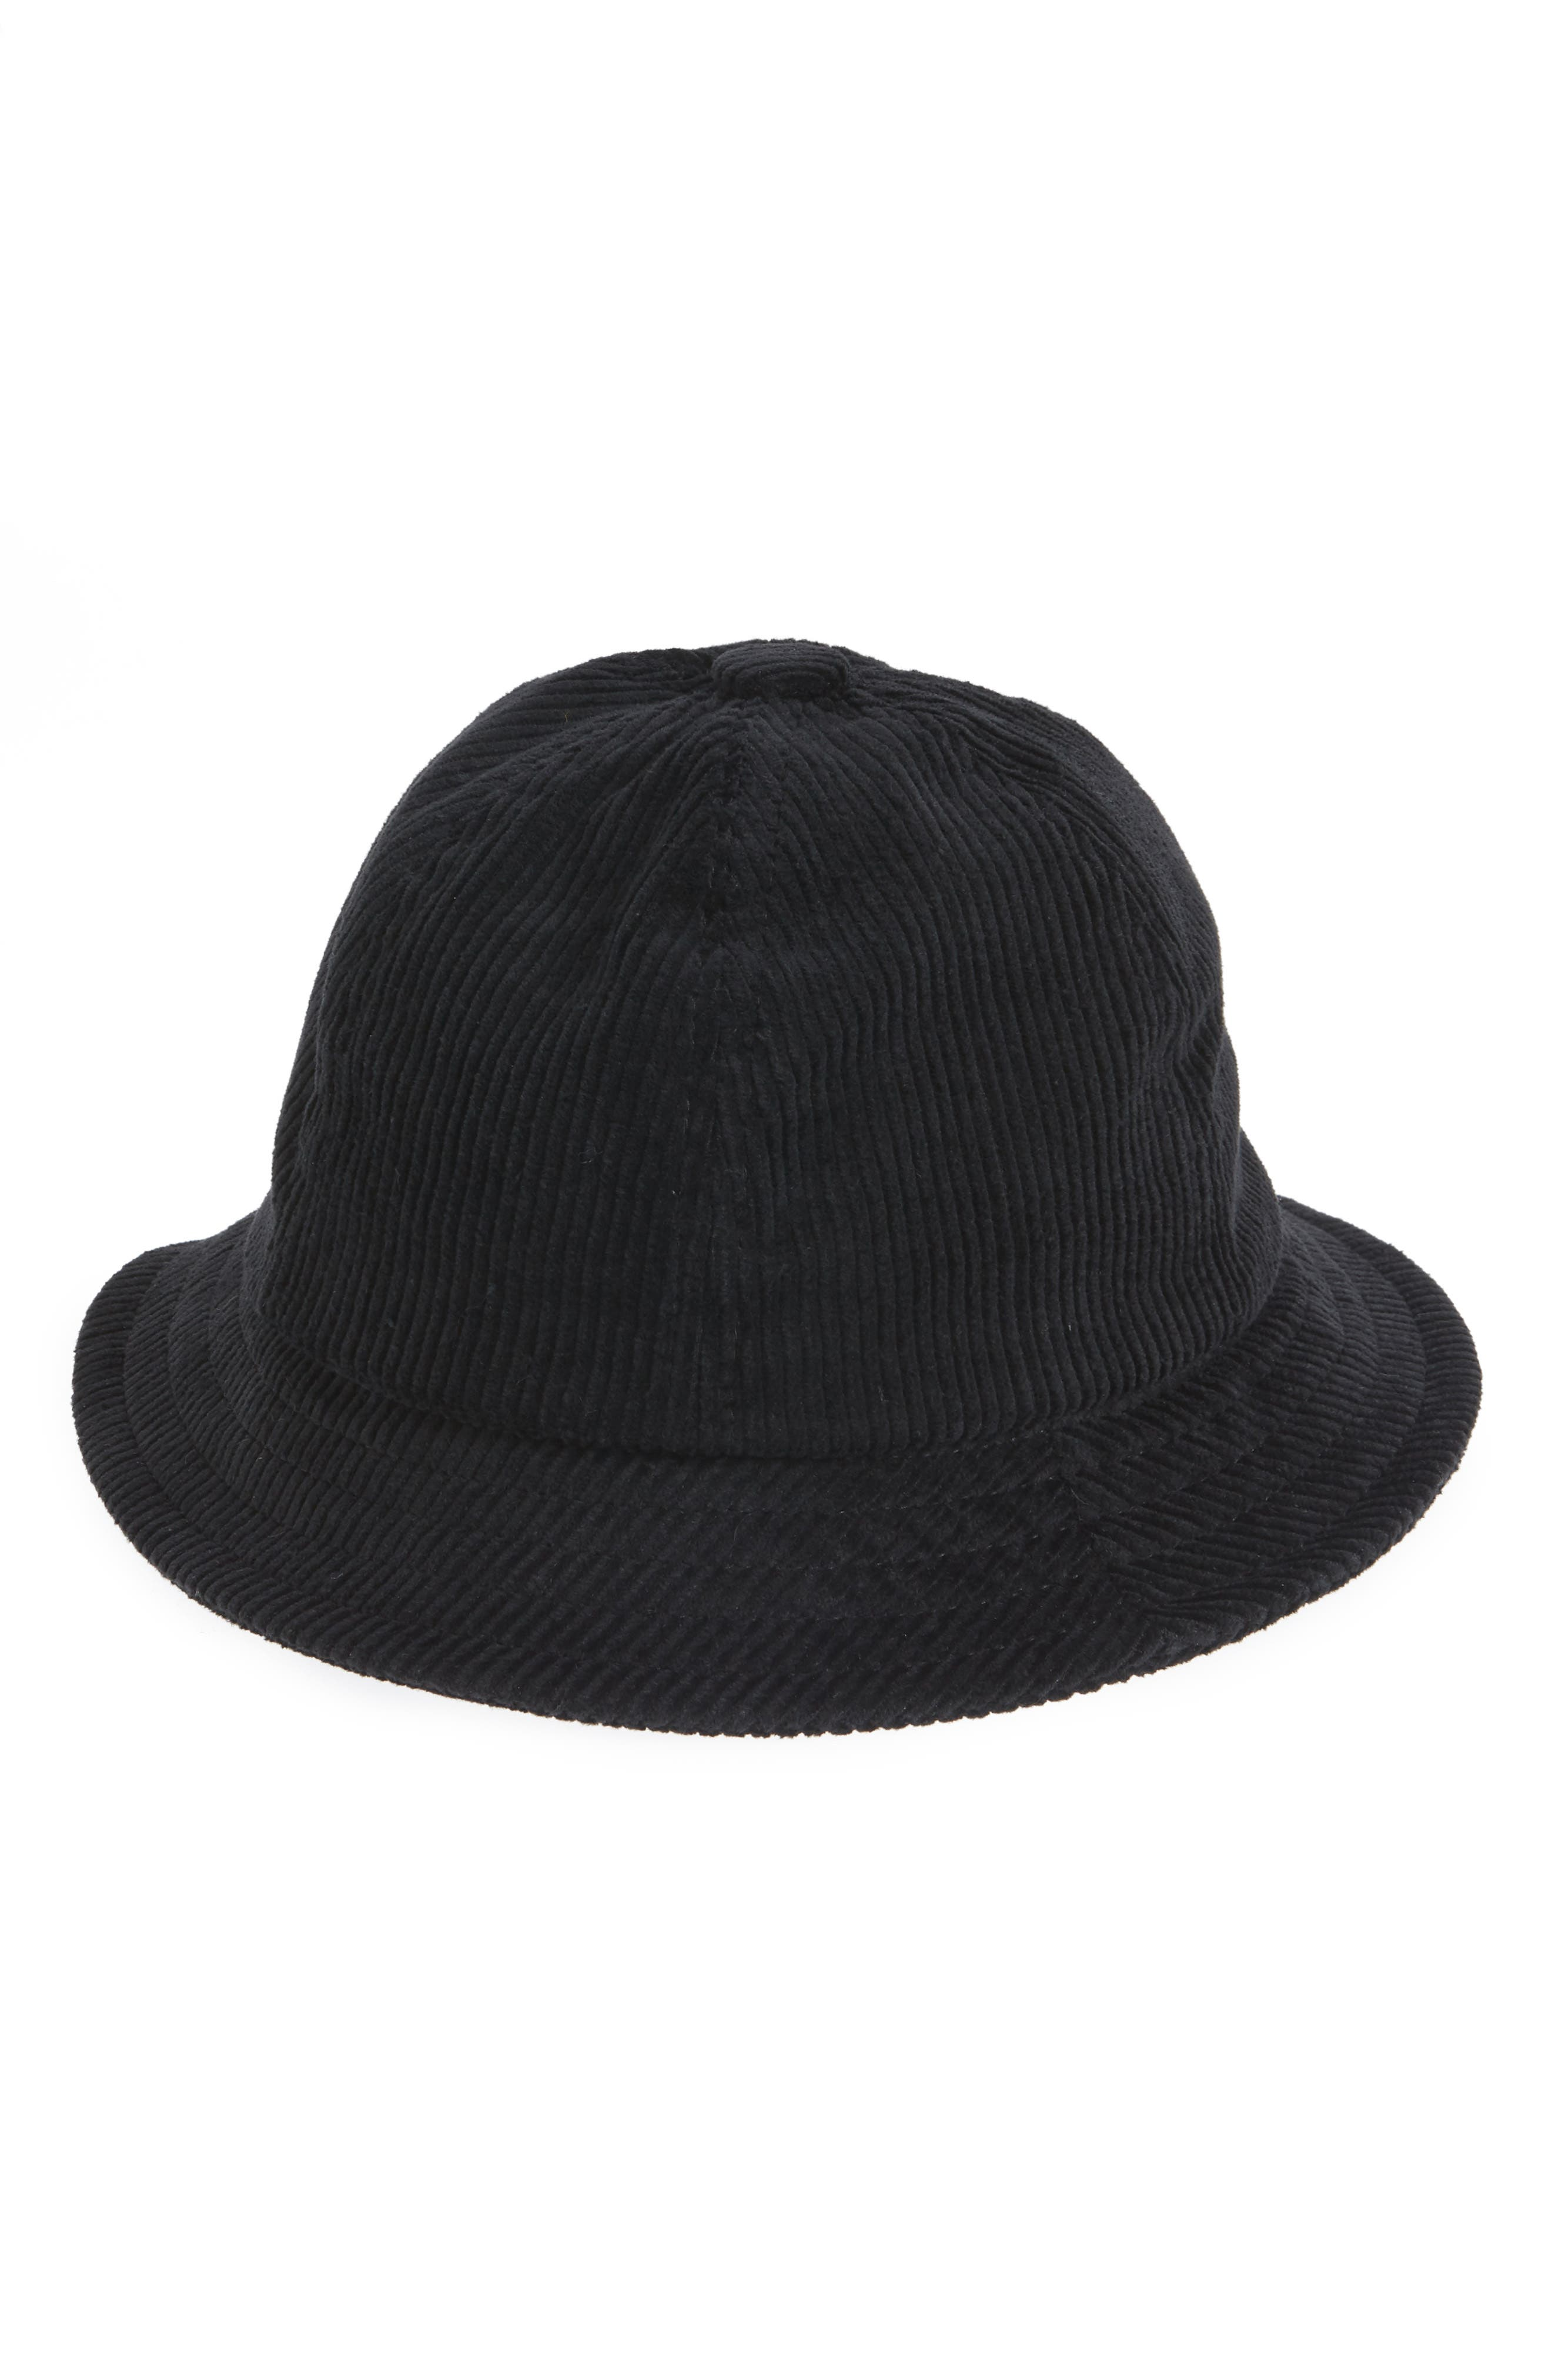 Essex Bucket Hat,                         Main,                         color, BLACK/ BLACK